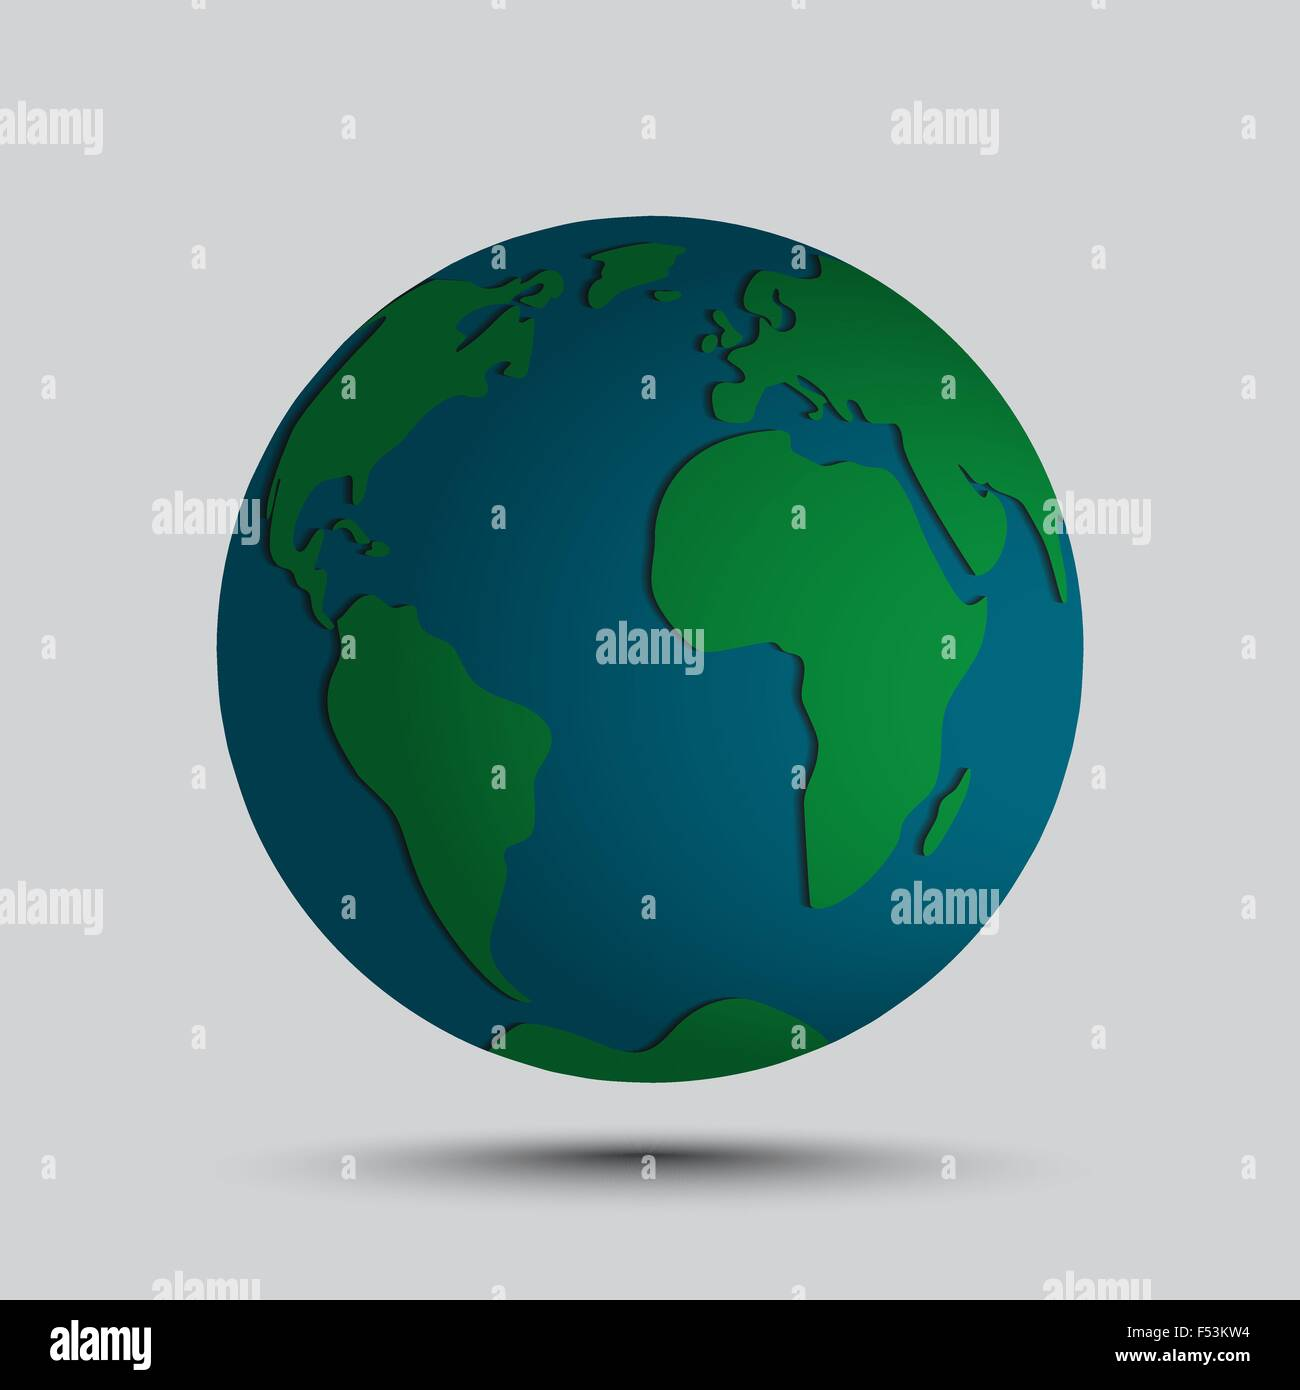 Simplified vector globe map icon with simple embossed continents of simplified vector globe map icon with simple embossed continents of the world gumiabroncs Image collections